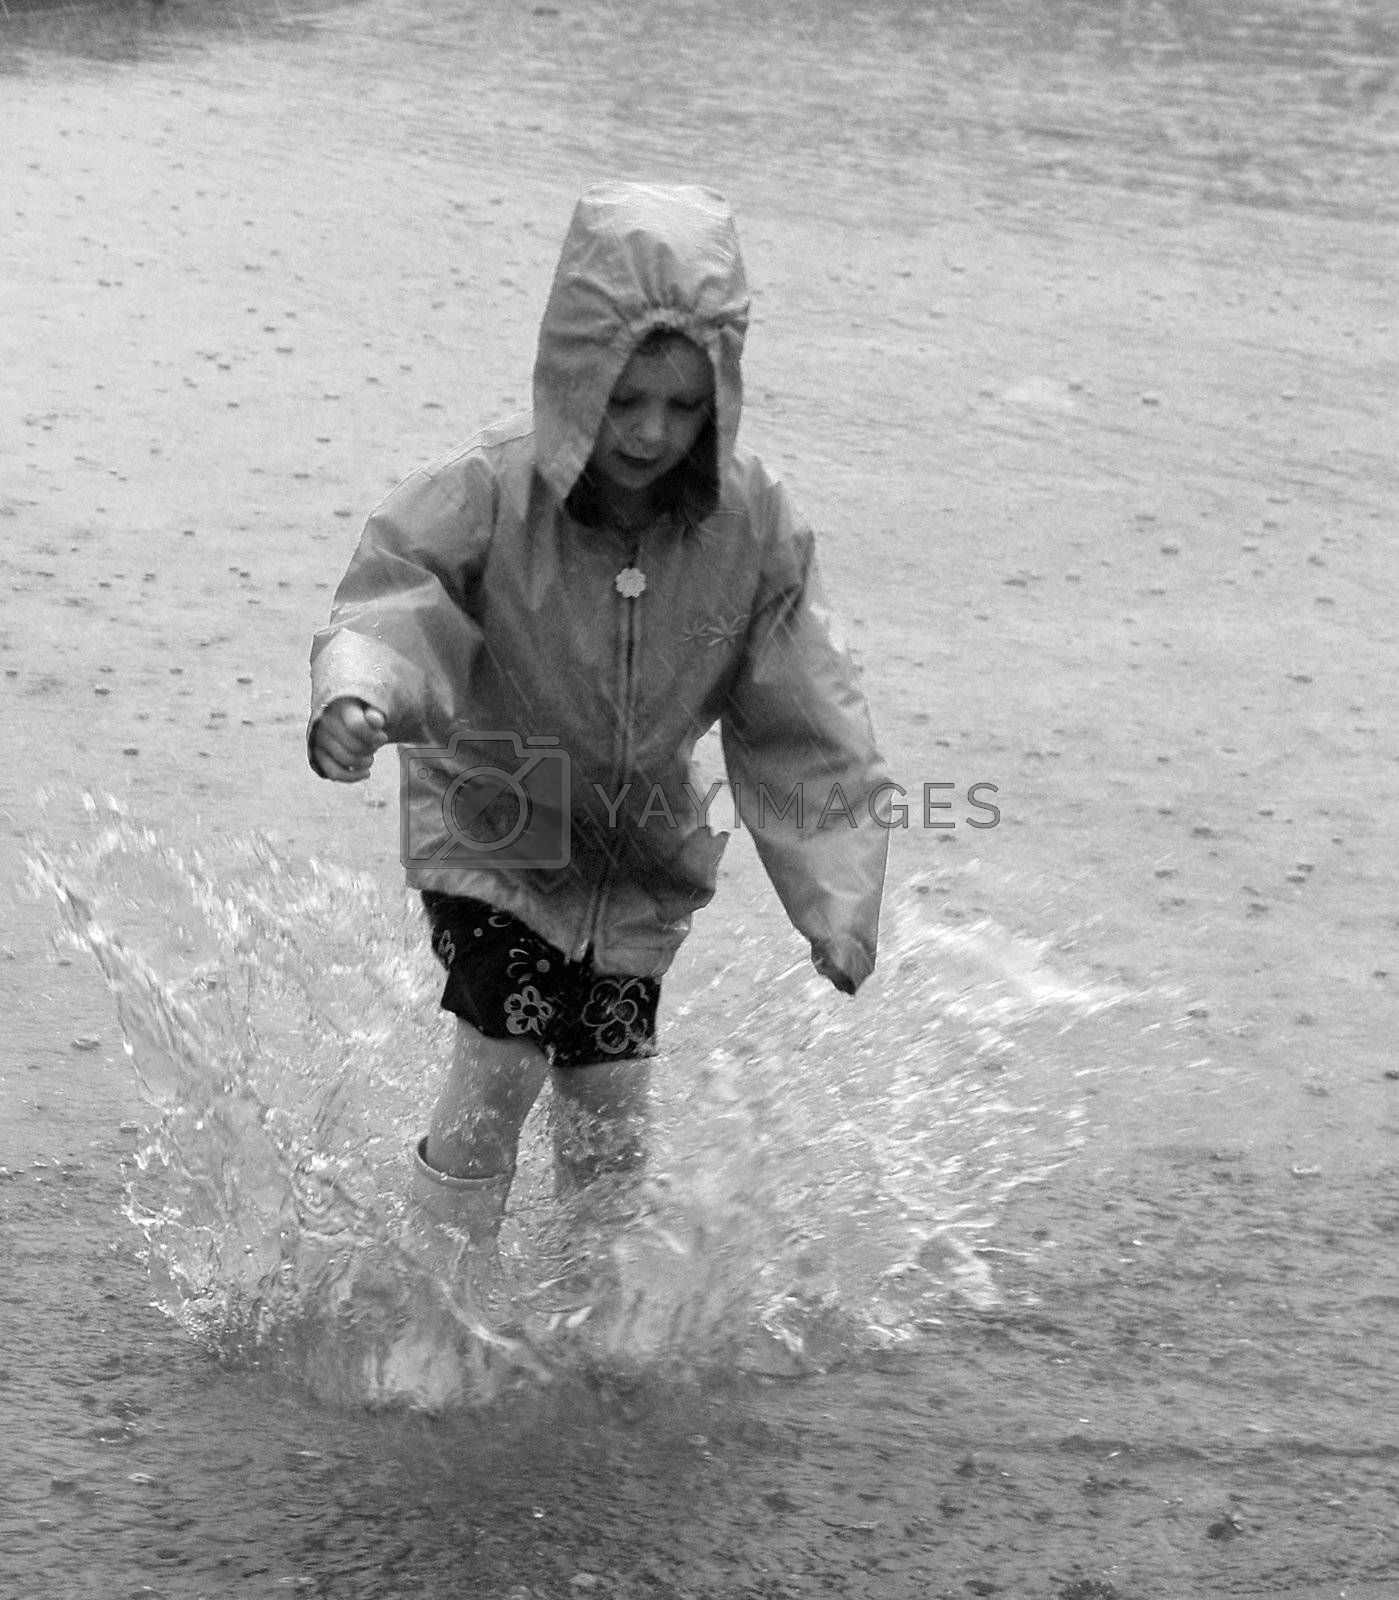 Child Jumping in Rainy Street